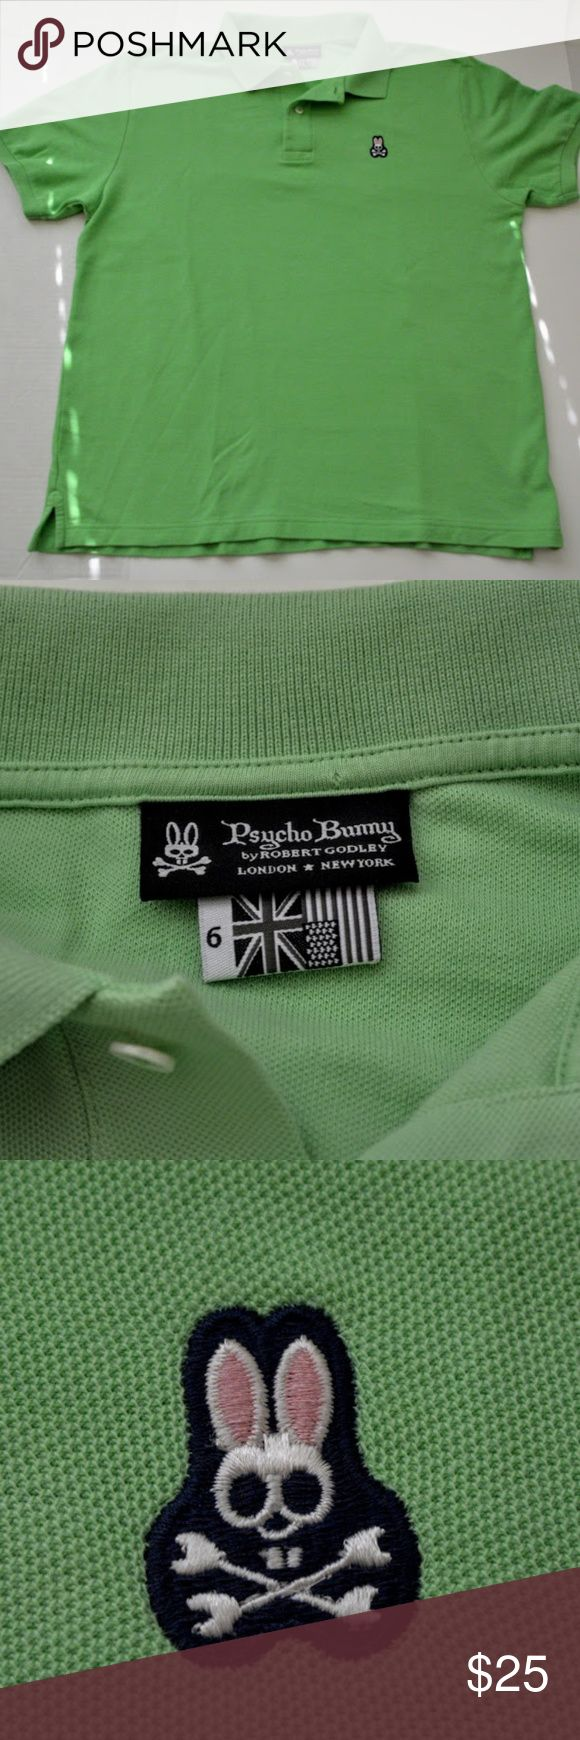 """Psycho Bunny Light Green Polo Shirt Sz. 6 (L Men's Lime green polo with embroidered pink,black and white logo.  This item is in excellent preowned condition, no visible stains, holes or tears  Measurements: Armpit to armpit 23"""" / Length (bottom of collar to botom hem) 29"""" *all measurements are approximate Psycho Bunny Shirts Polos"""